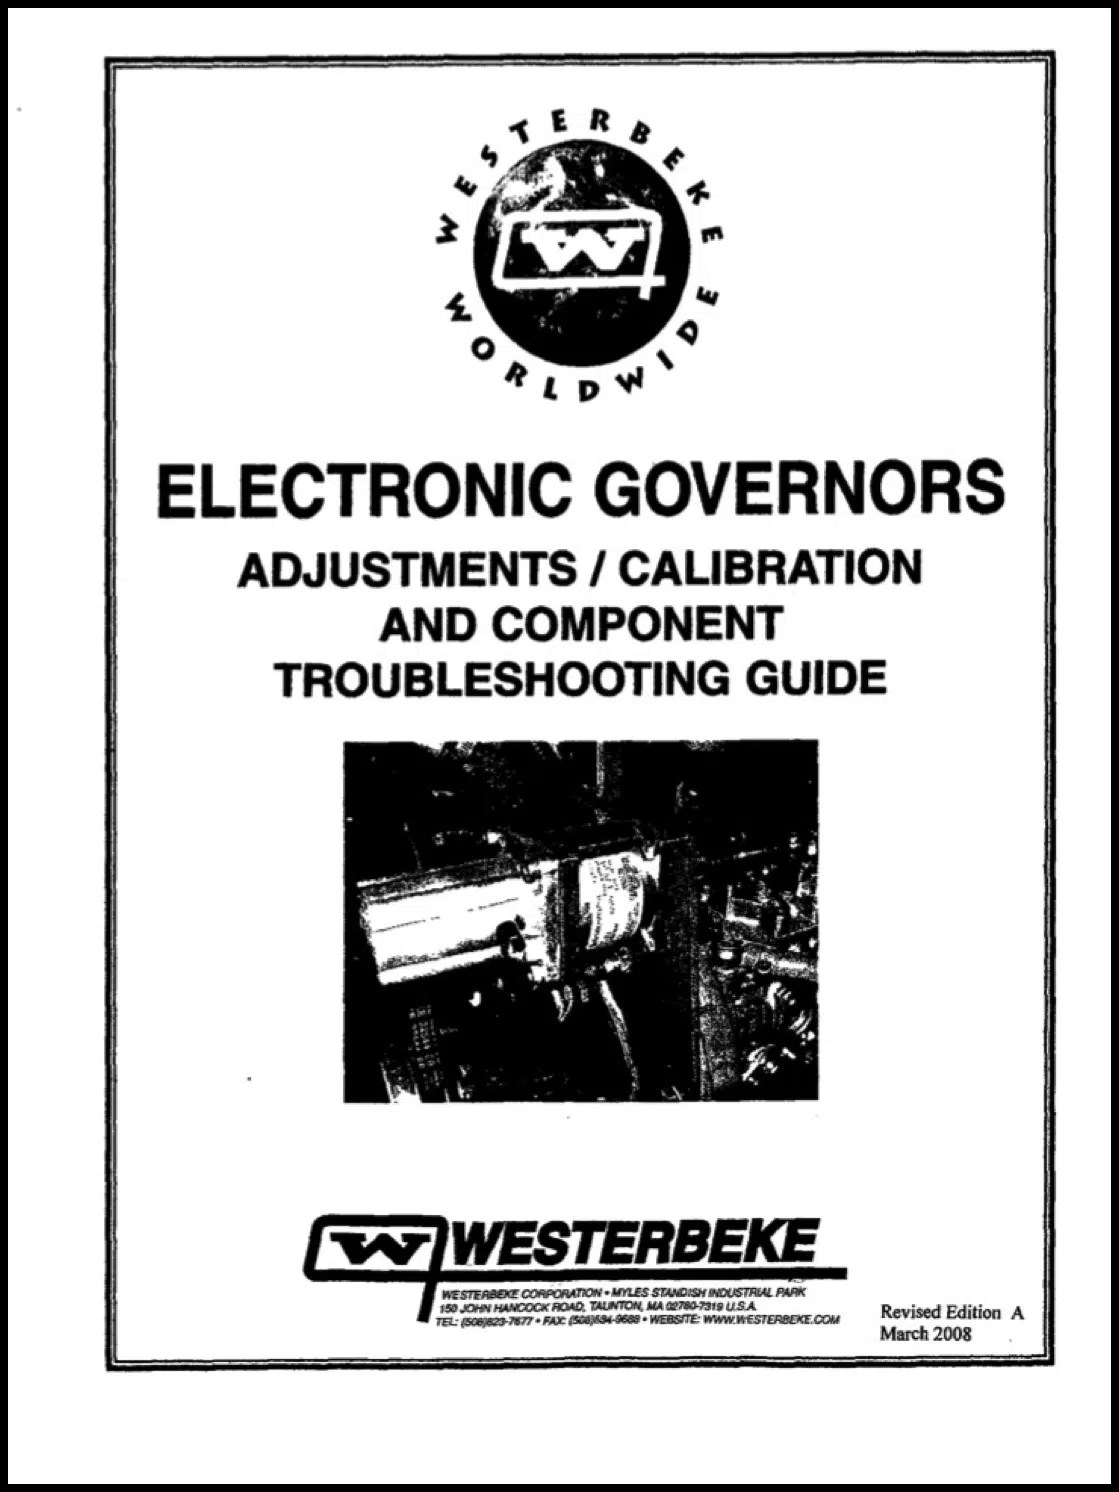 Westerbeke Electronic Governor Troubleshooting Guide